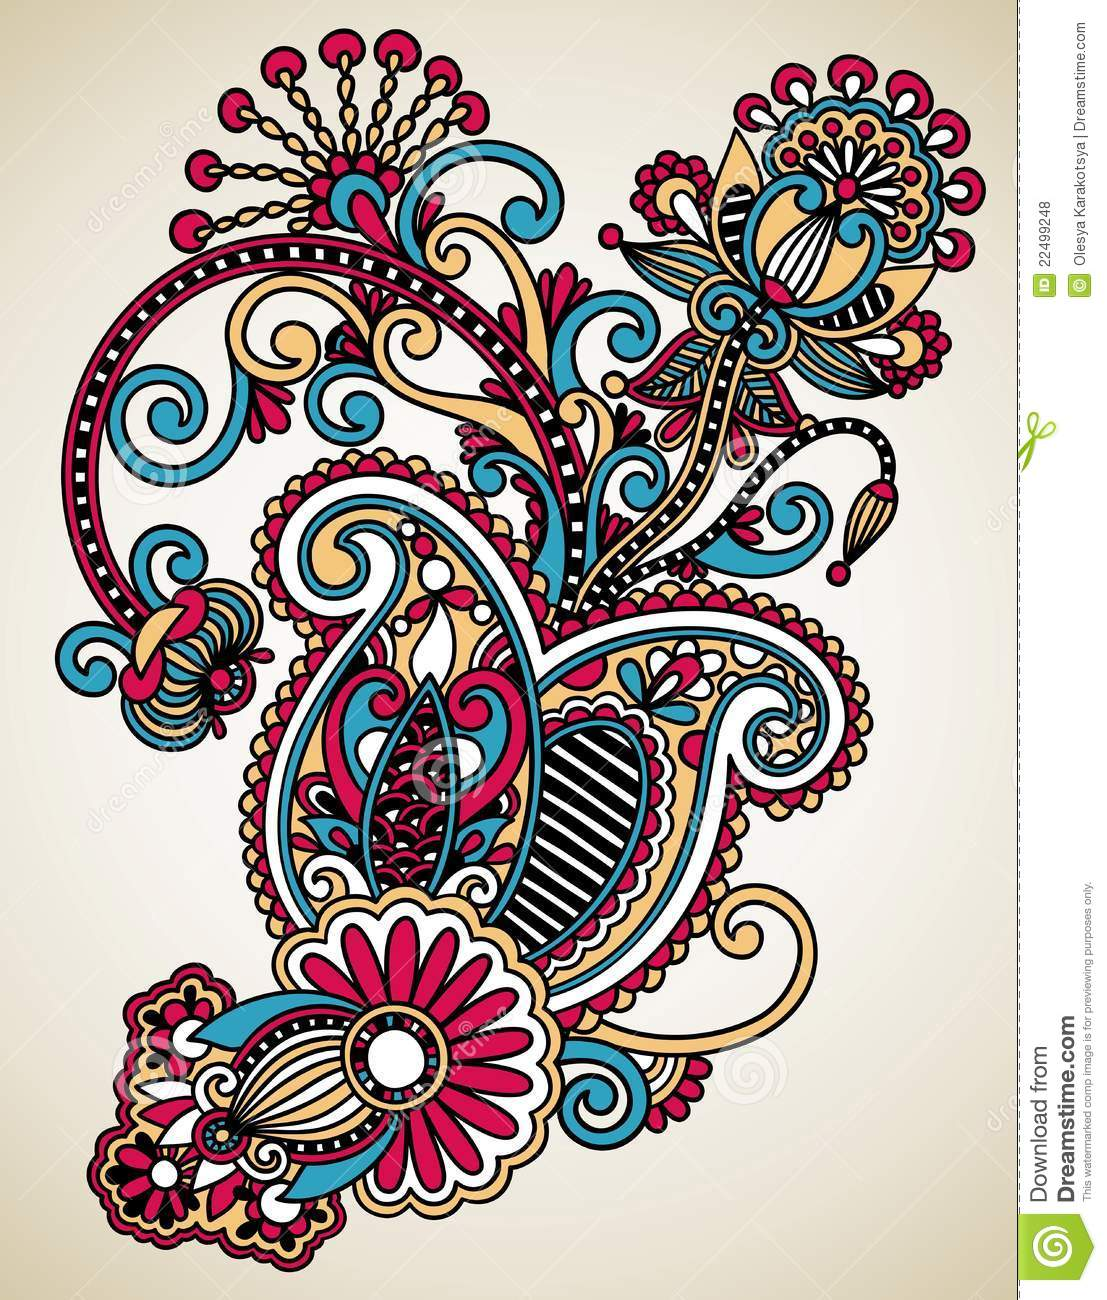 Line Art Ornate Flower Design Royalty Free Stock Photos ...